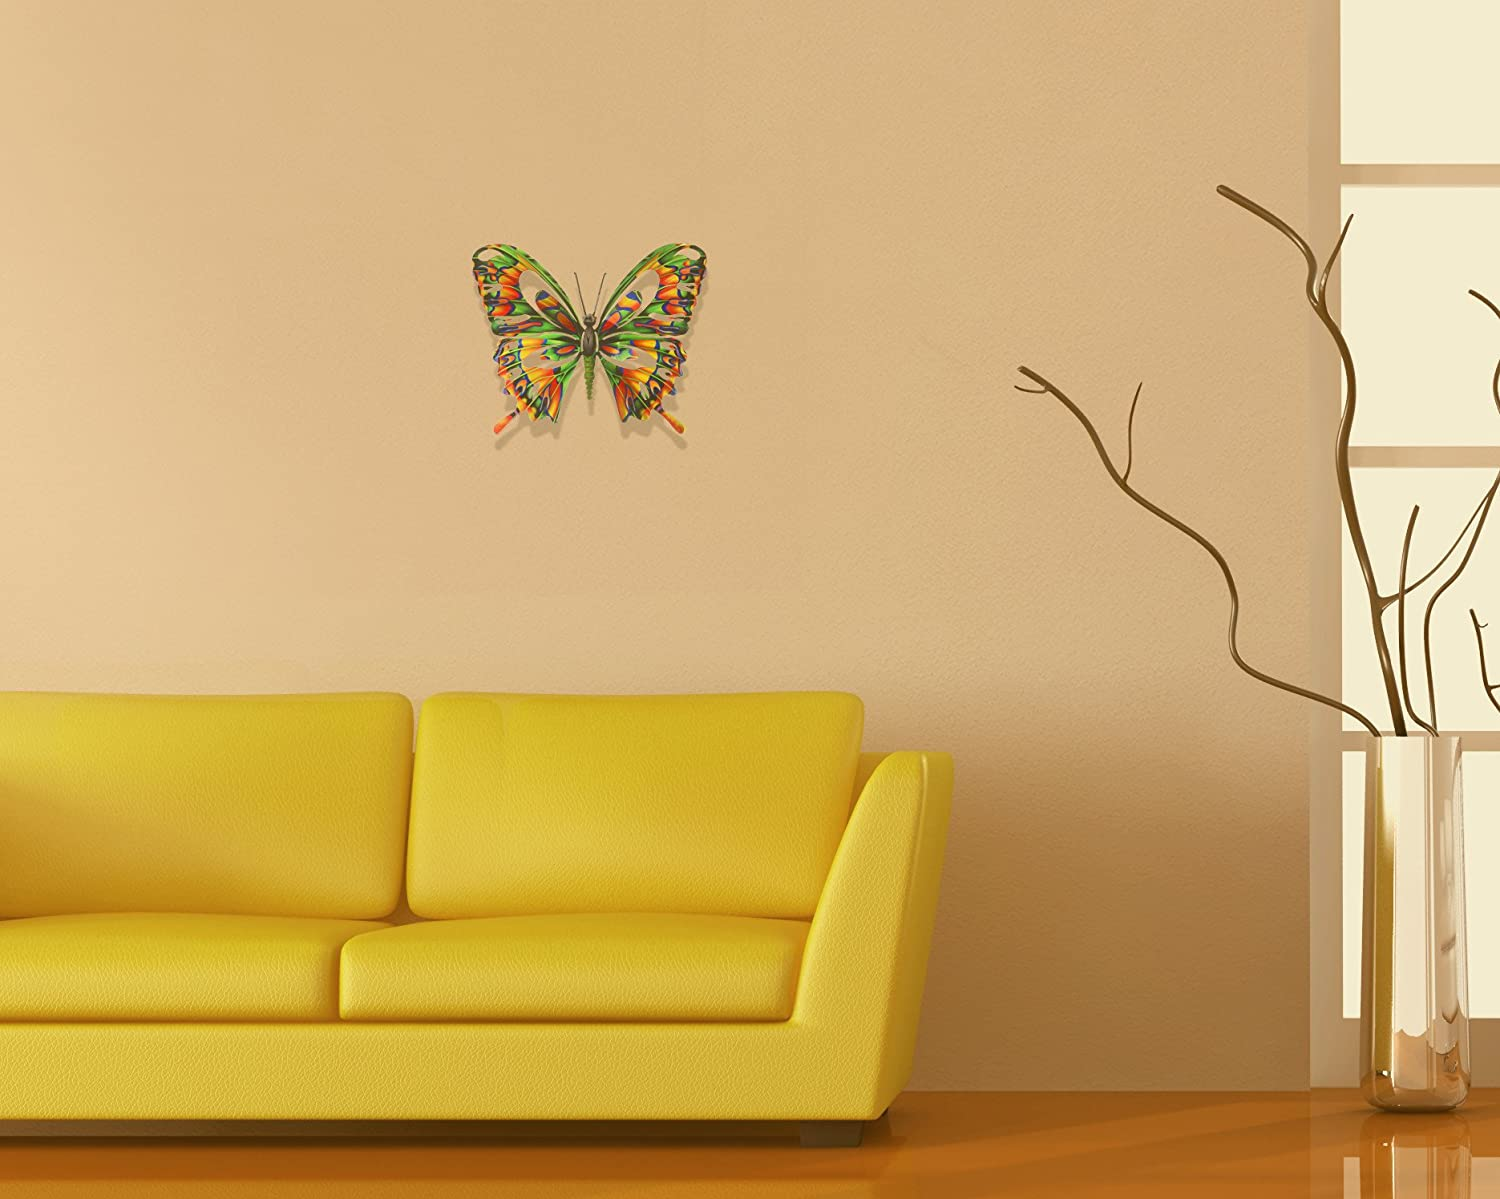 Amazon.com : Next Innovations Butterfly Refraxions 3D Wall Art ...